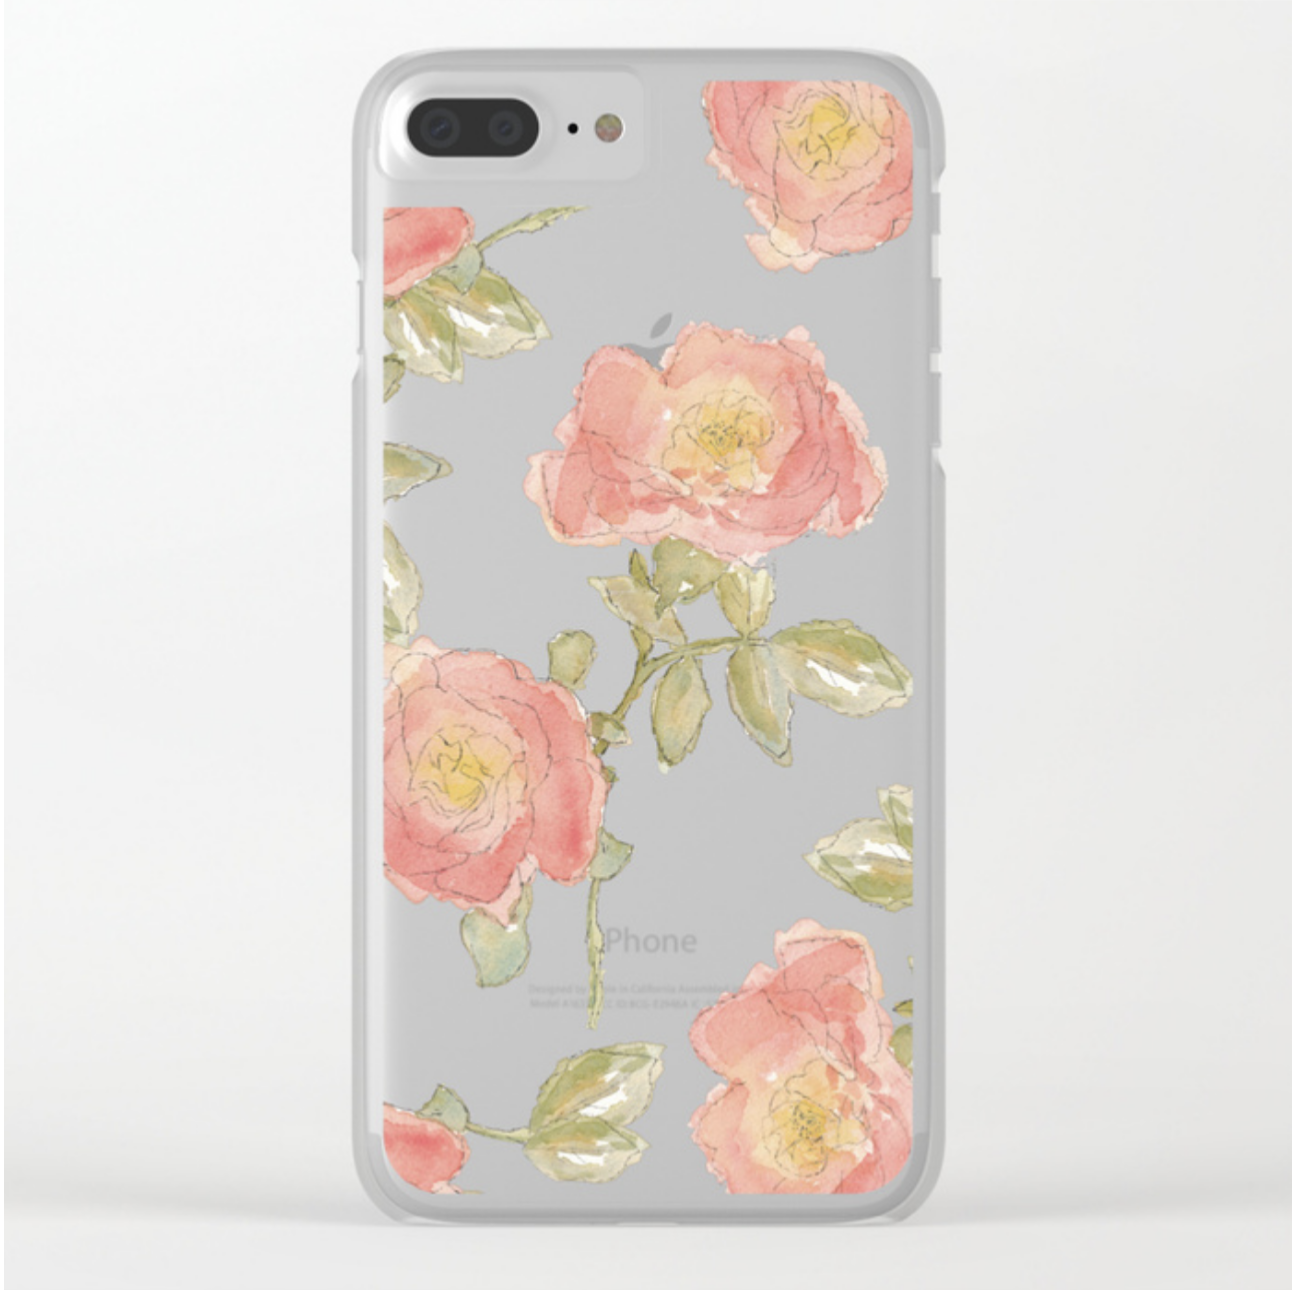 Loose Inky Watercolor Floral Pattern